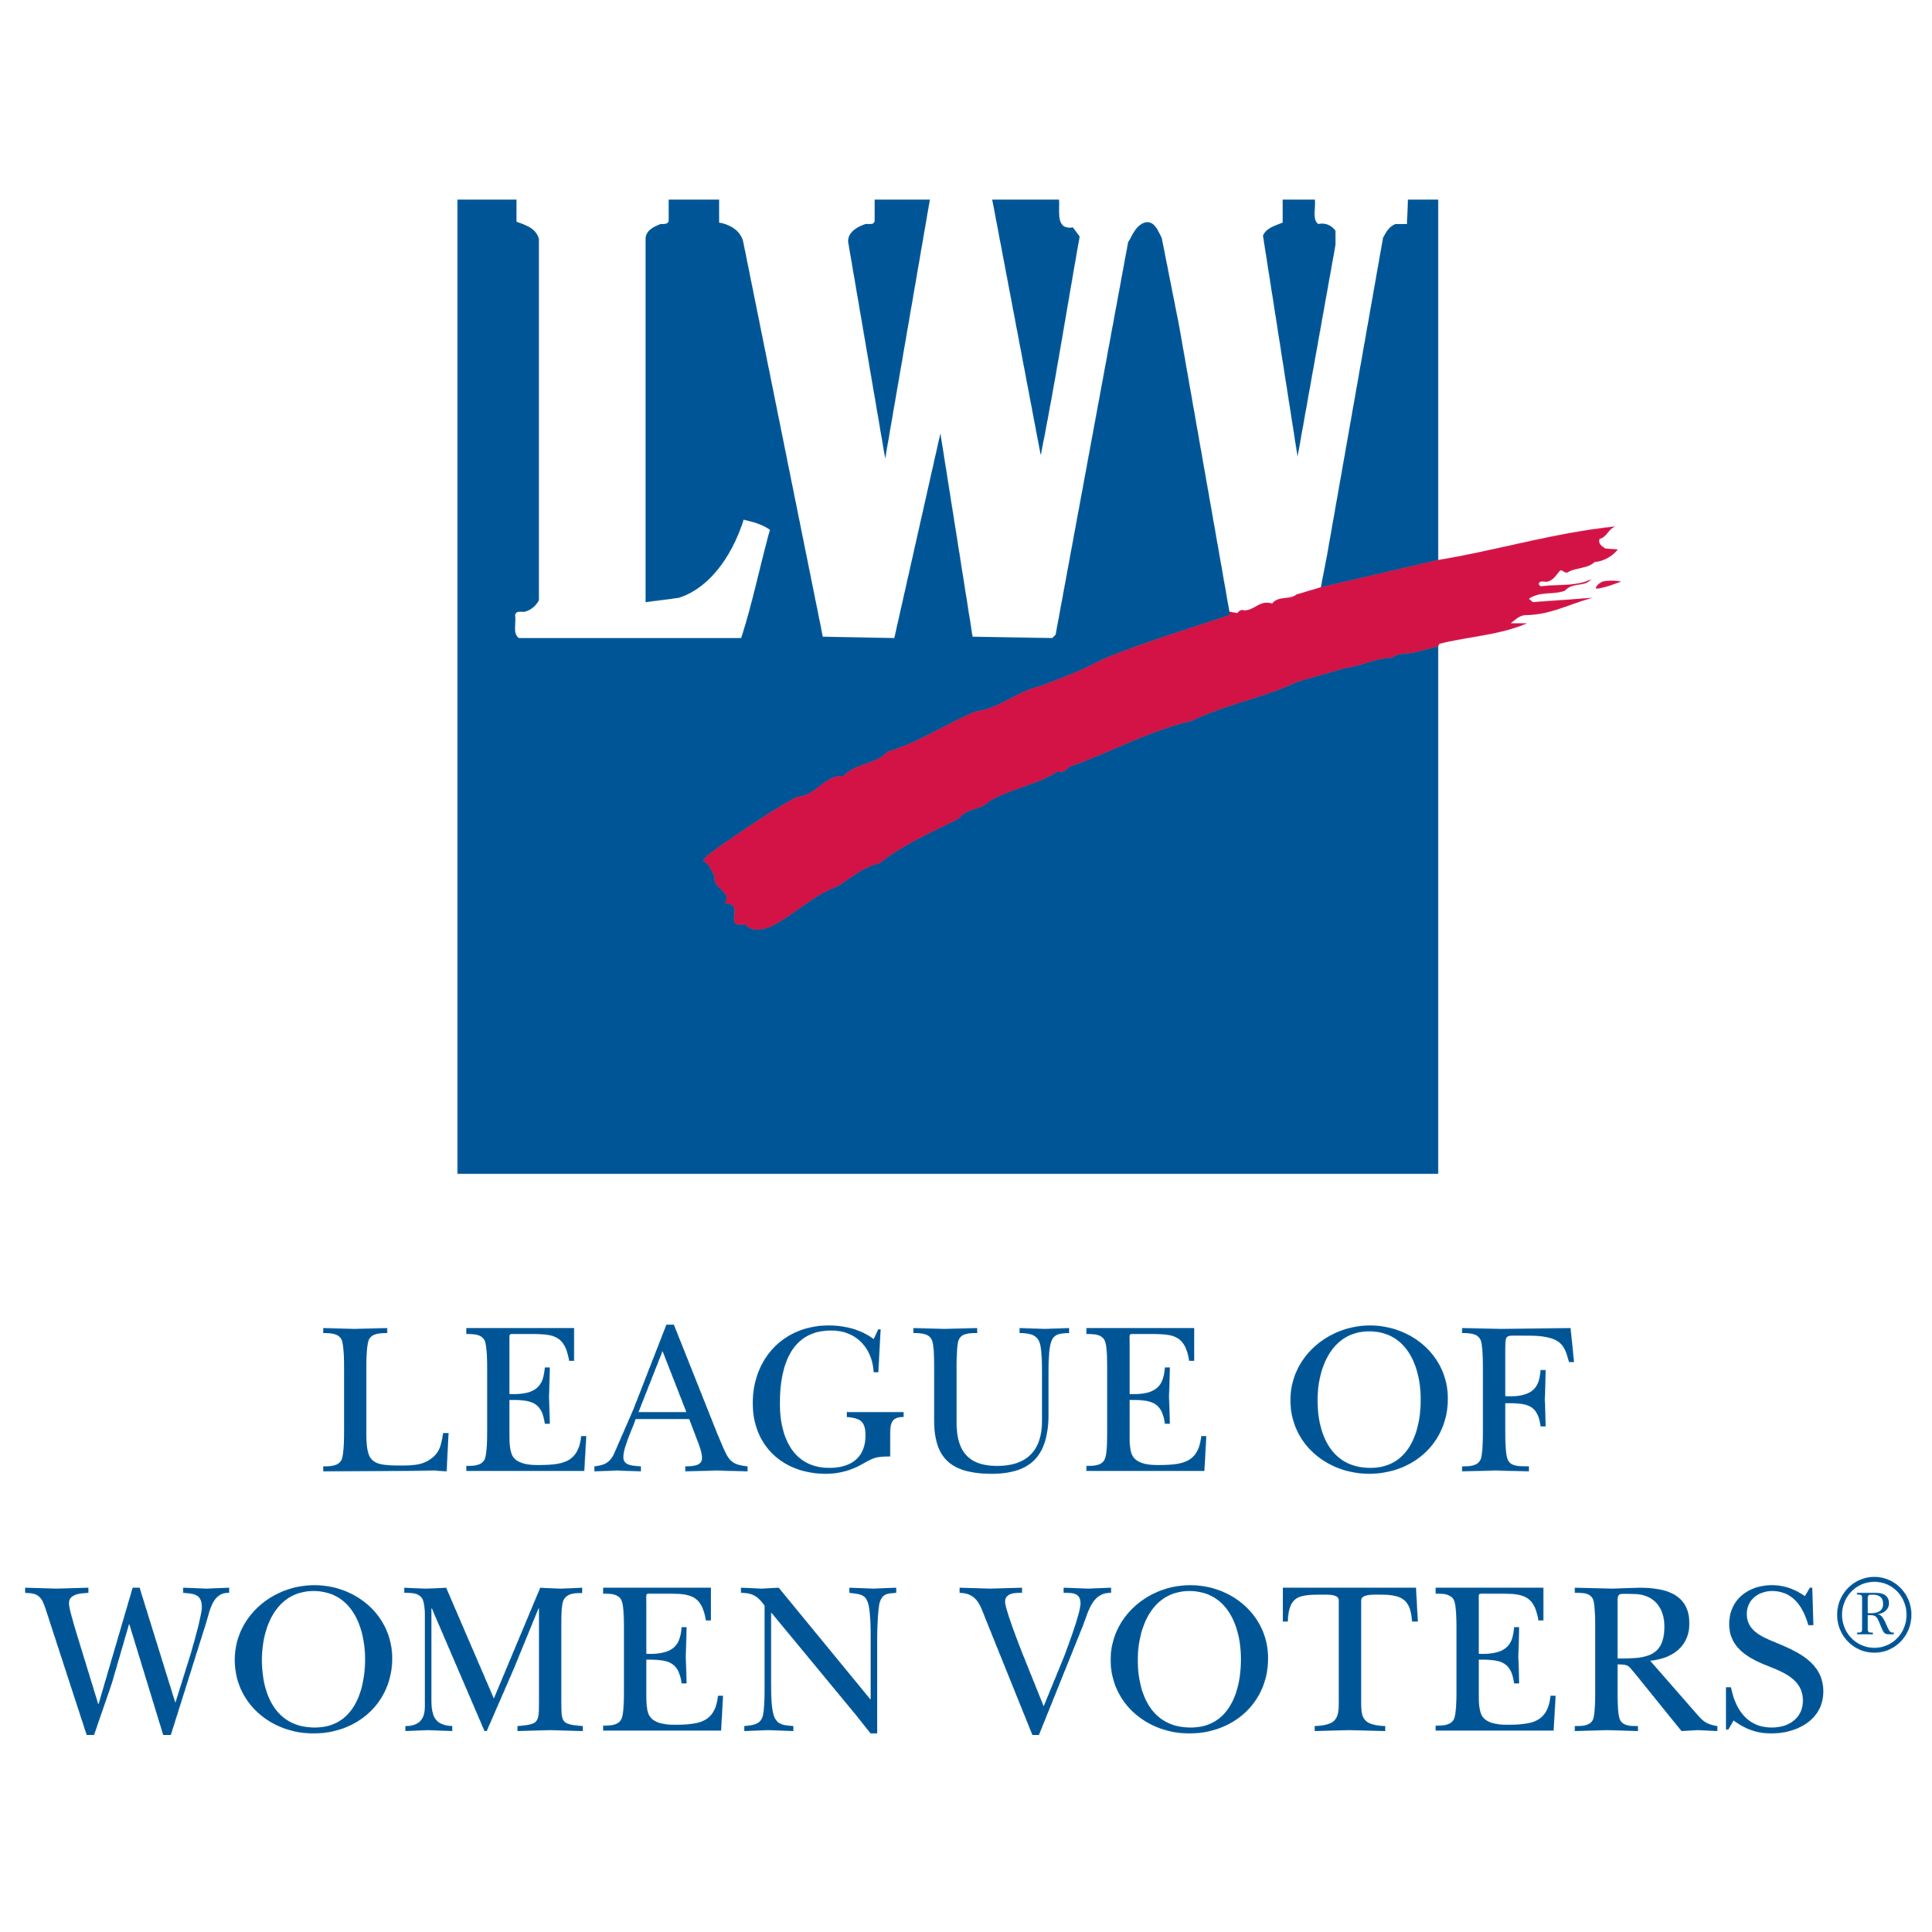 dfw-leagueofwomenvoters.png